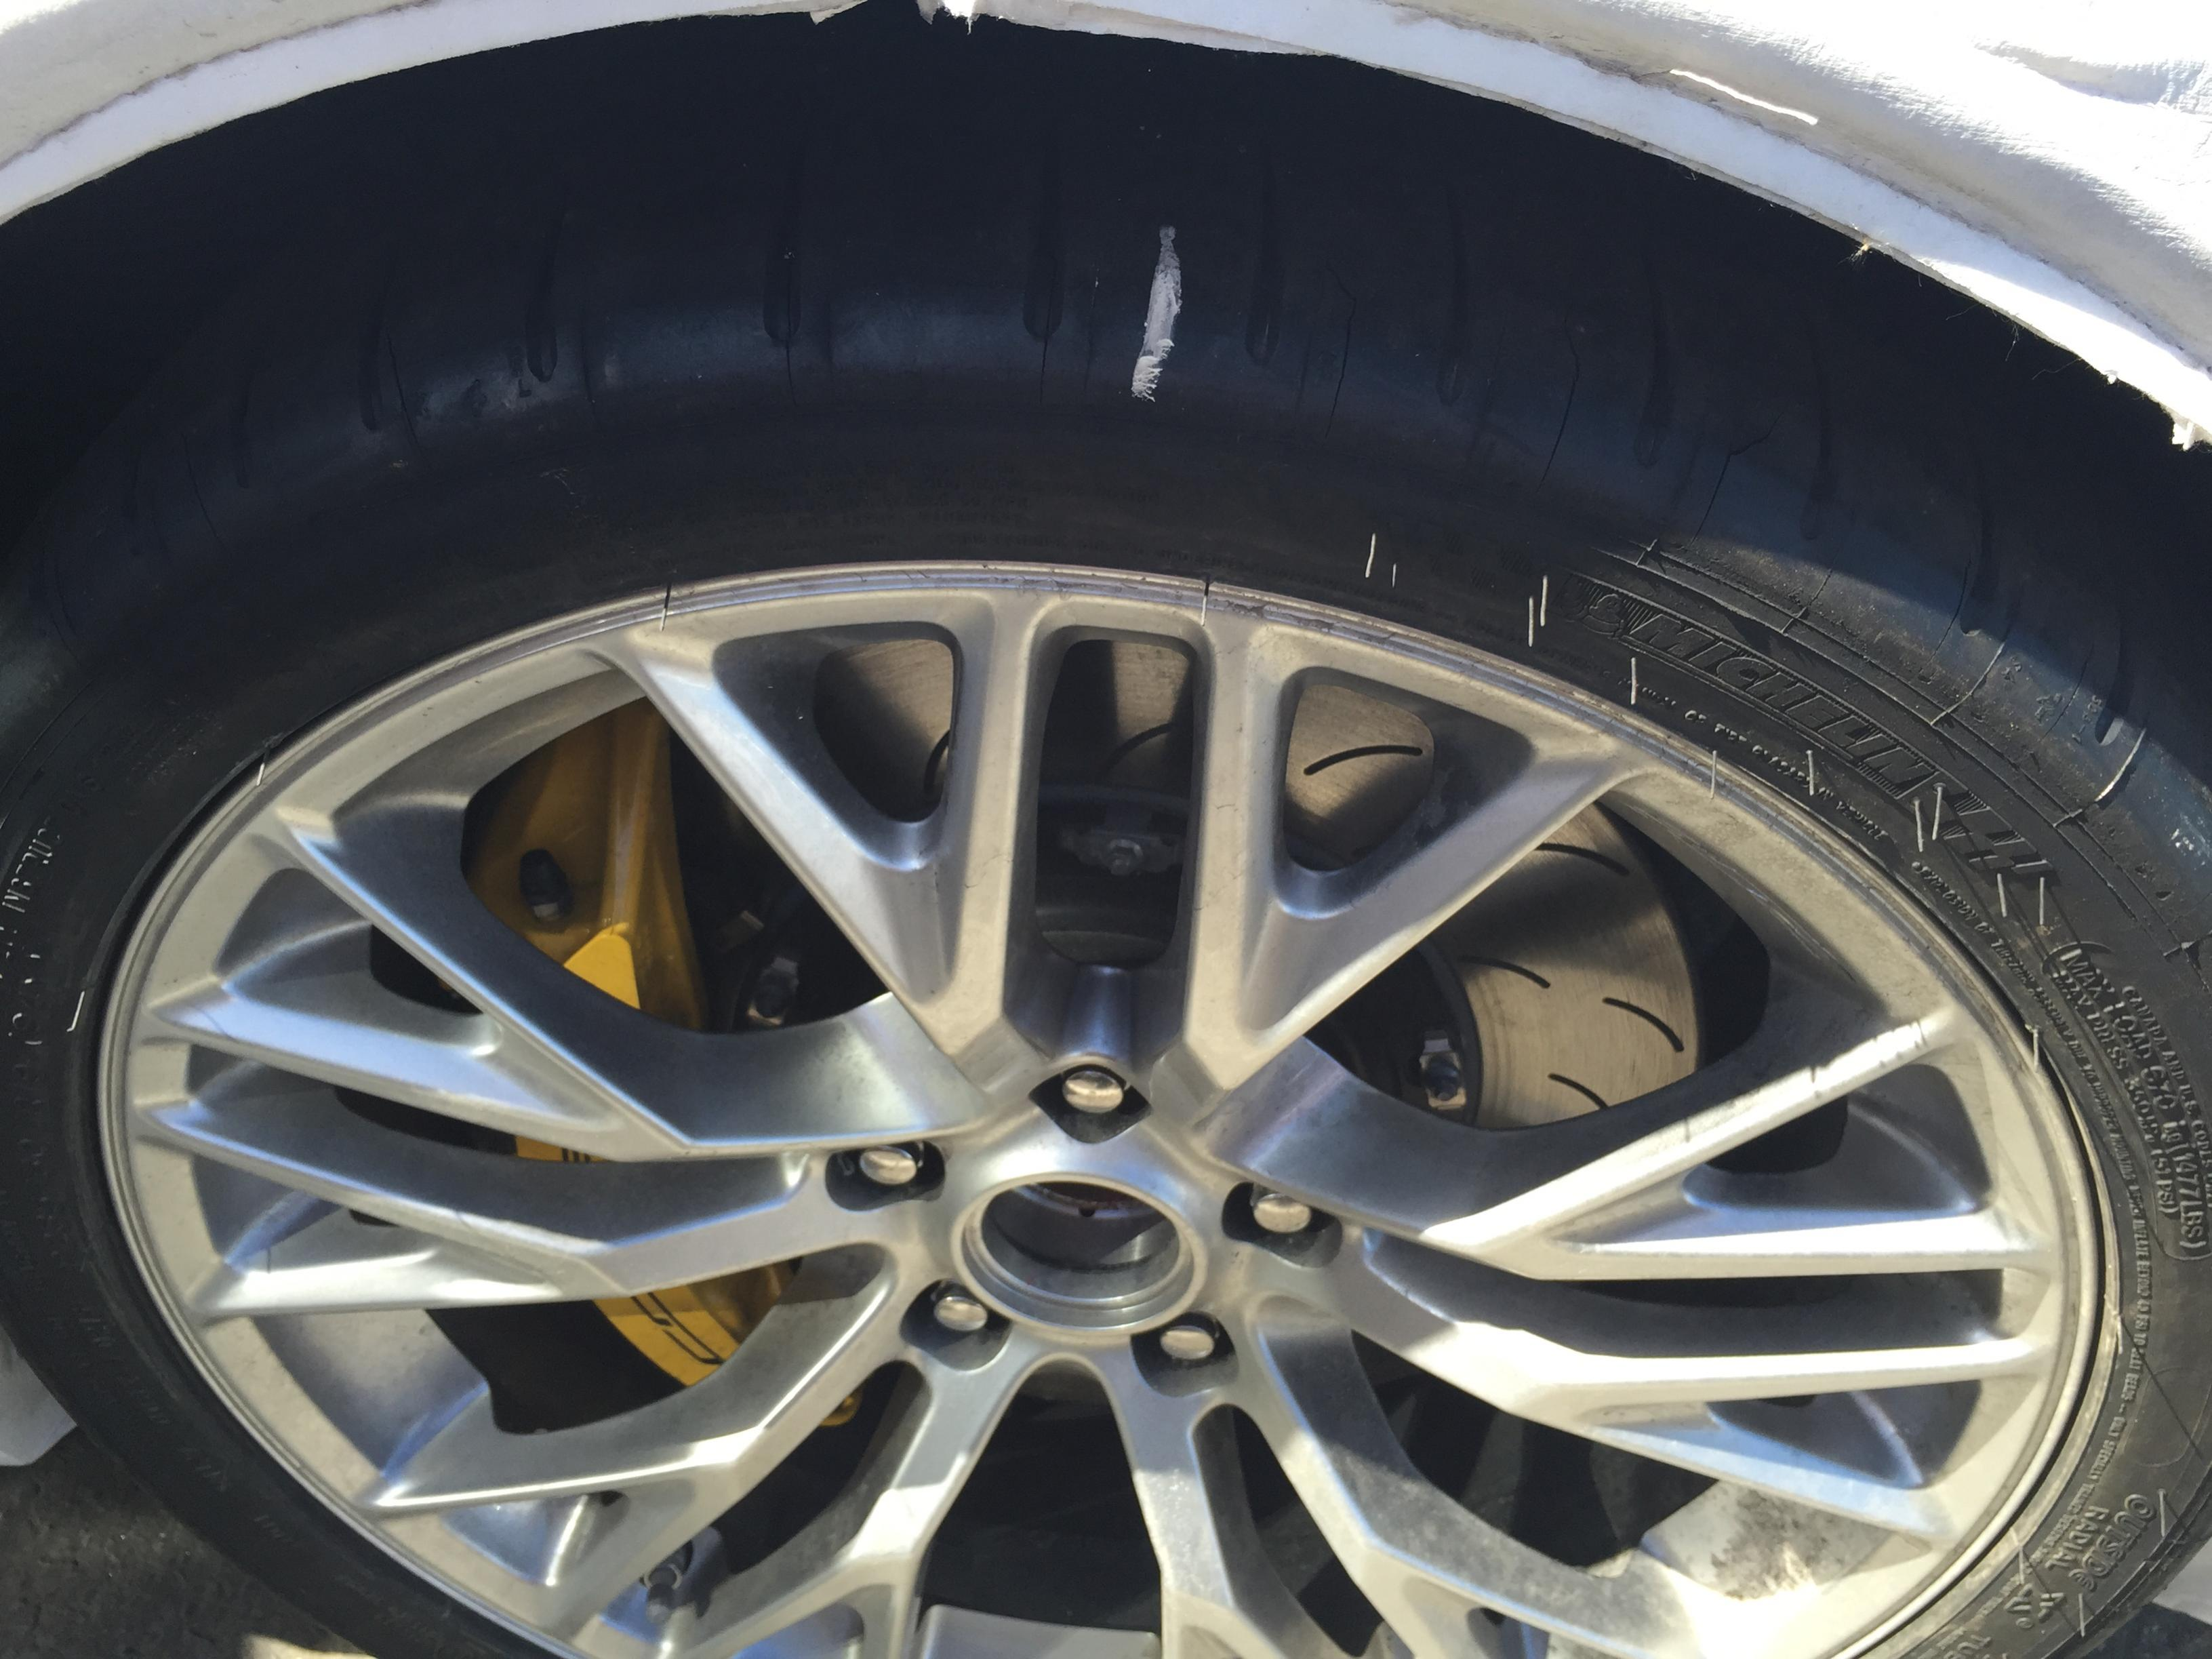 C7 Corvette Cracked Tires Problem Explained by Michelin ...